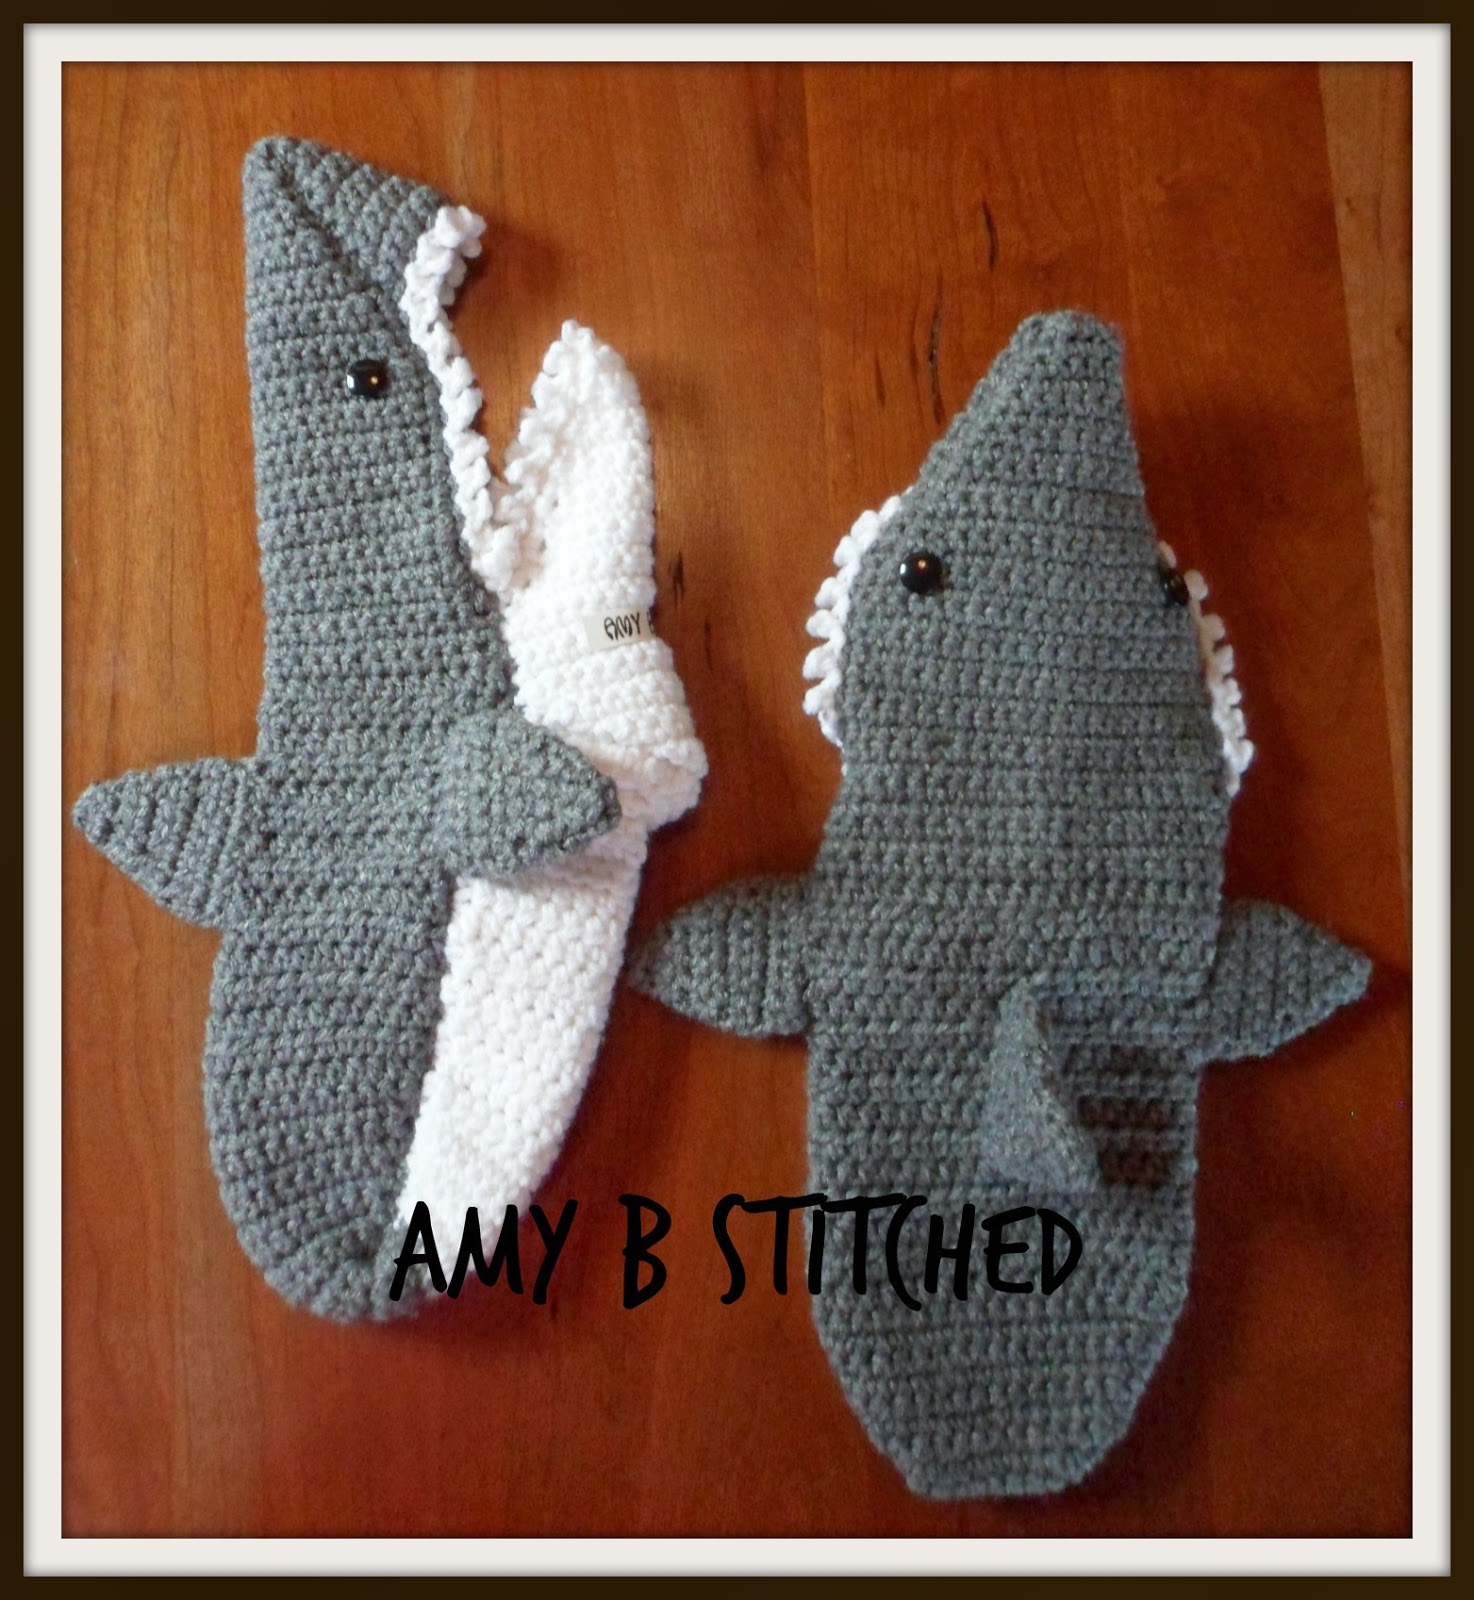 Crochet Shark Shoes Free Pattern : A Stitch At A Time for Amy B Stitched: Crocheted Shark ...